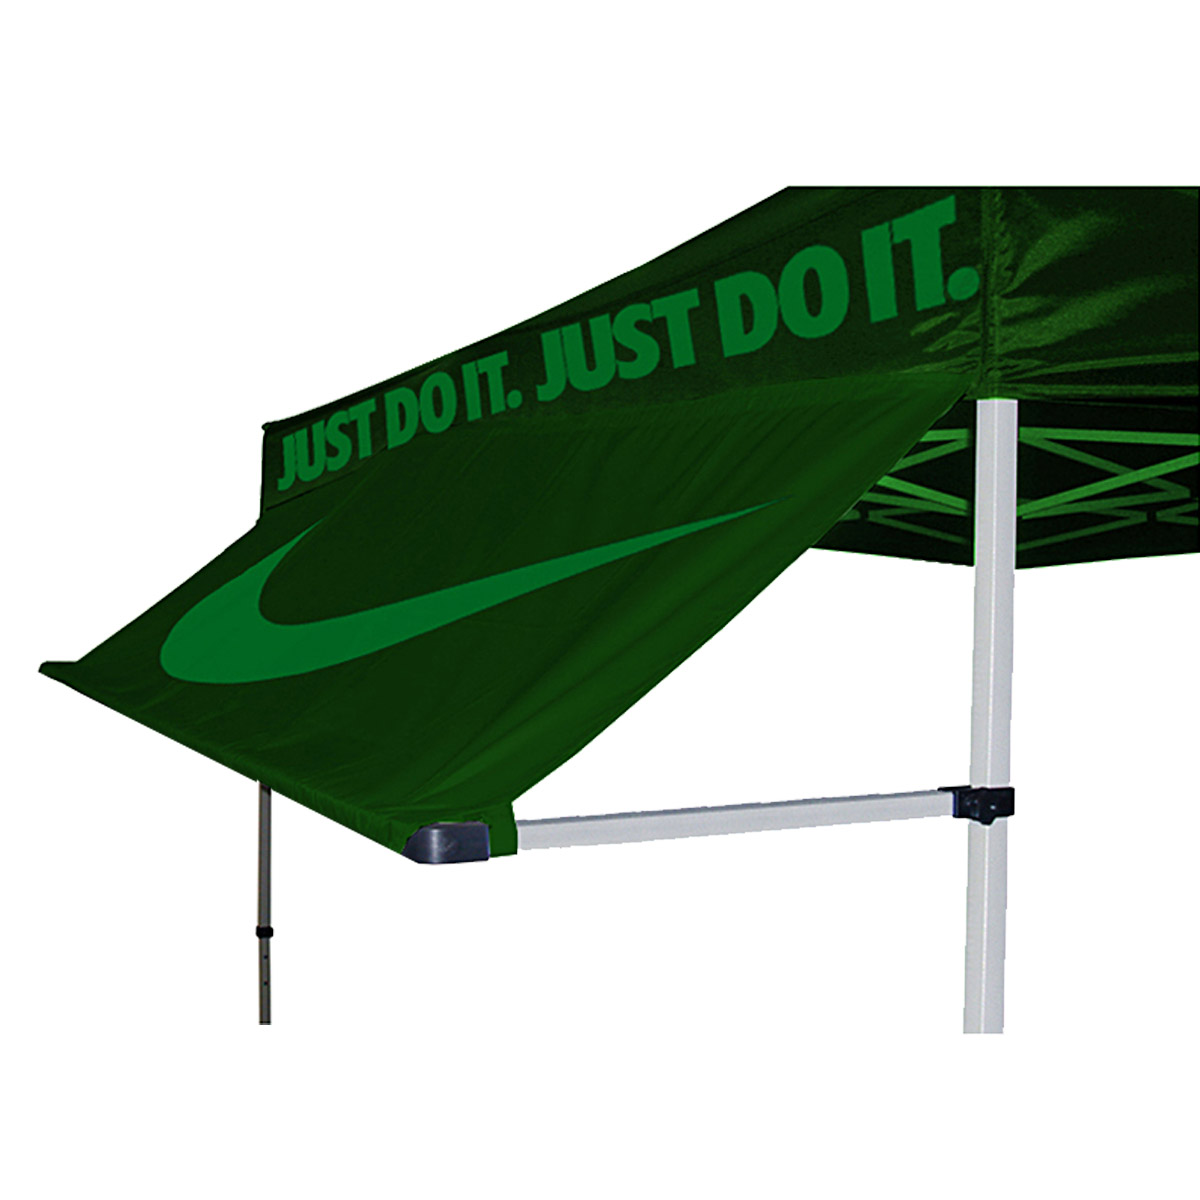 Custom Printed Canopy Awning Kit